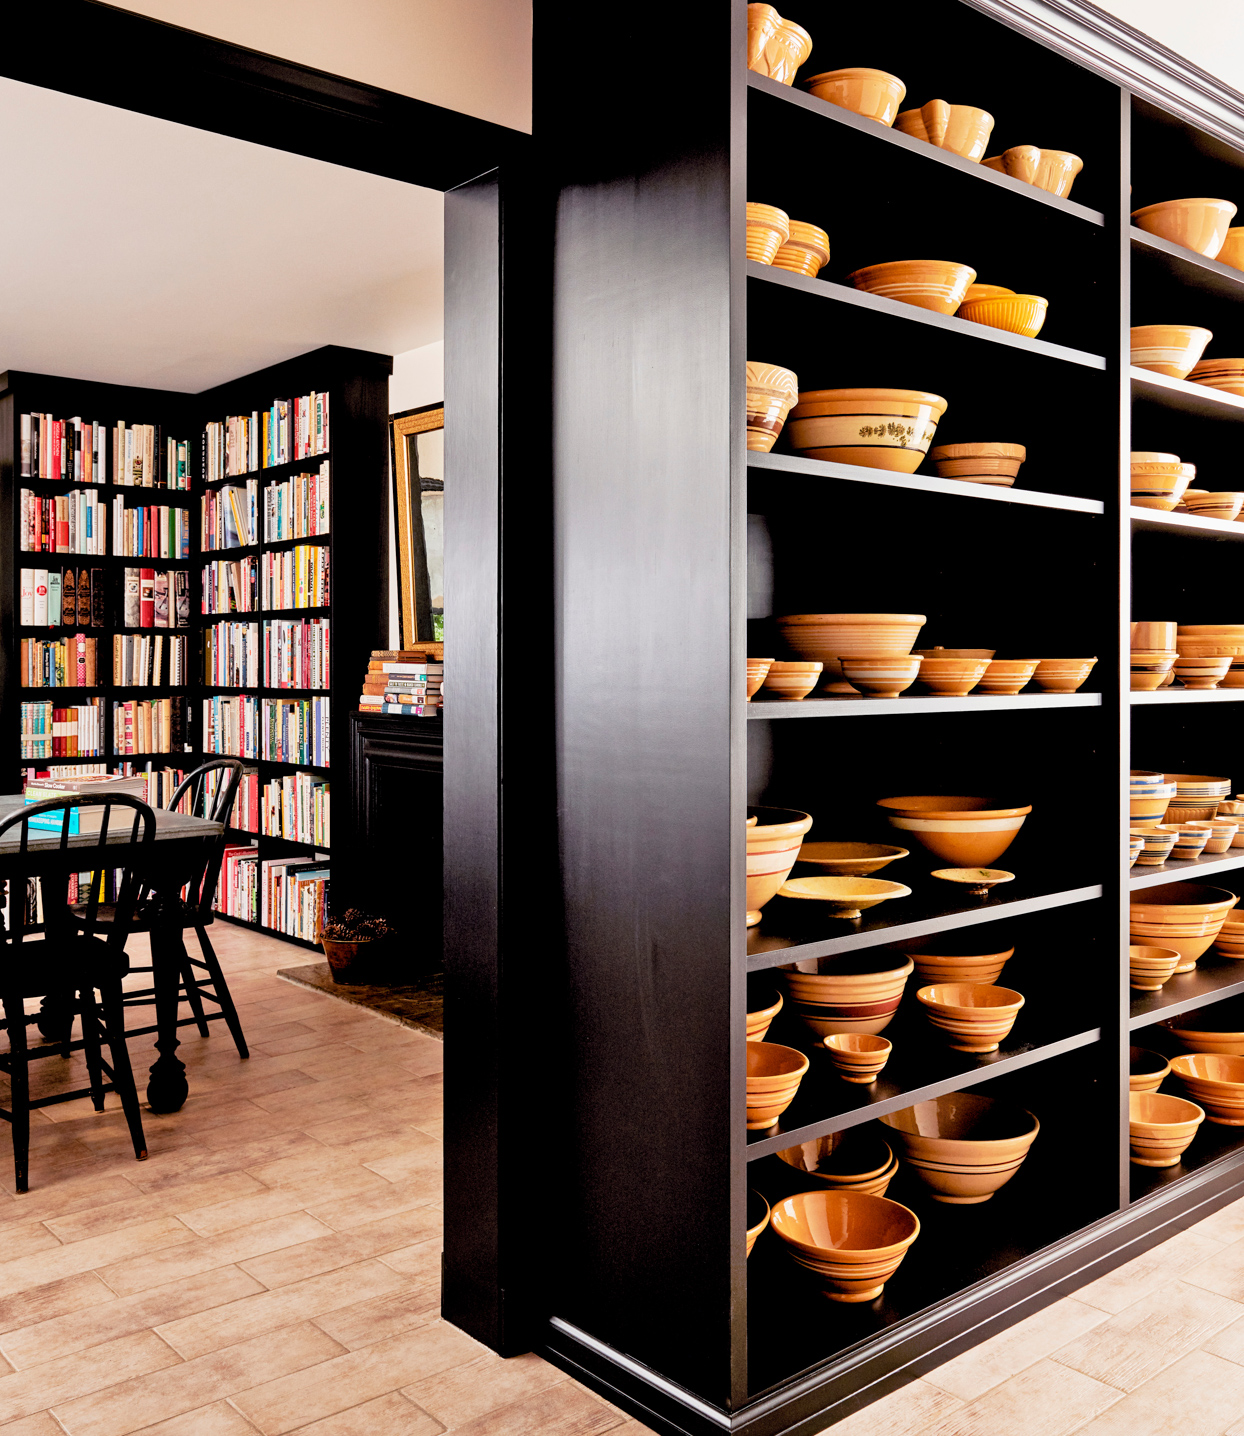 black shelves lined with yellow dishware